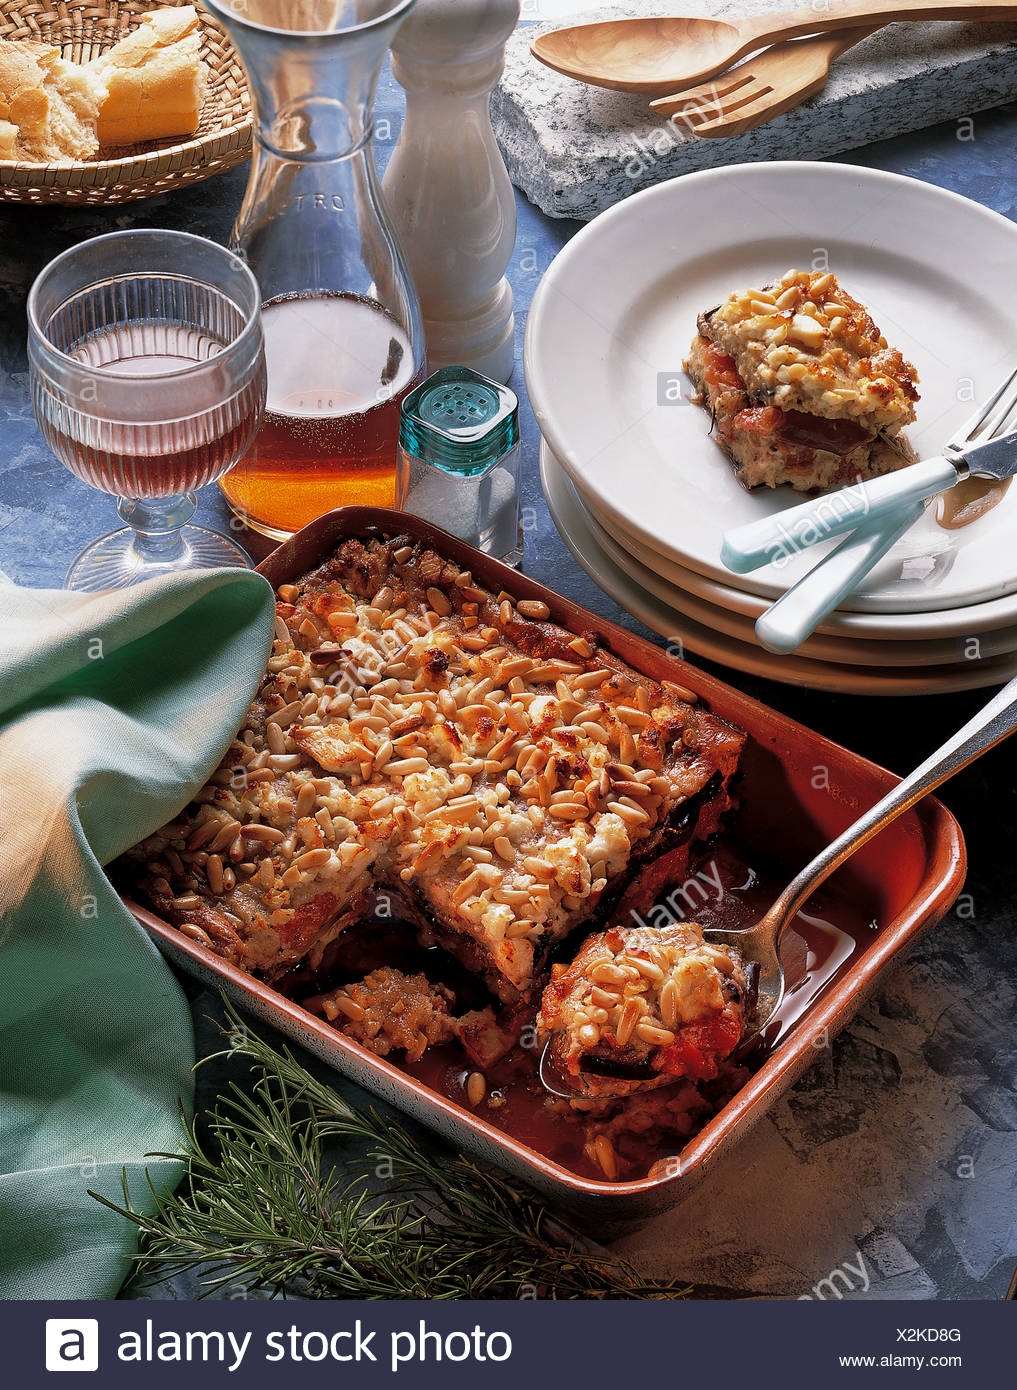 Eggplant casserole peloponnese with tomatoes under a crust of eggplant casserole peloponnese with tomatoes under a crust of almonds pine nuts and feta cheese whole food cuisine greece forumfinder Choice Image